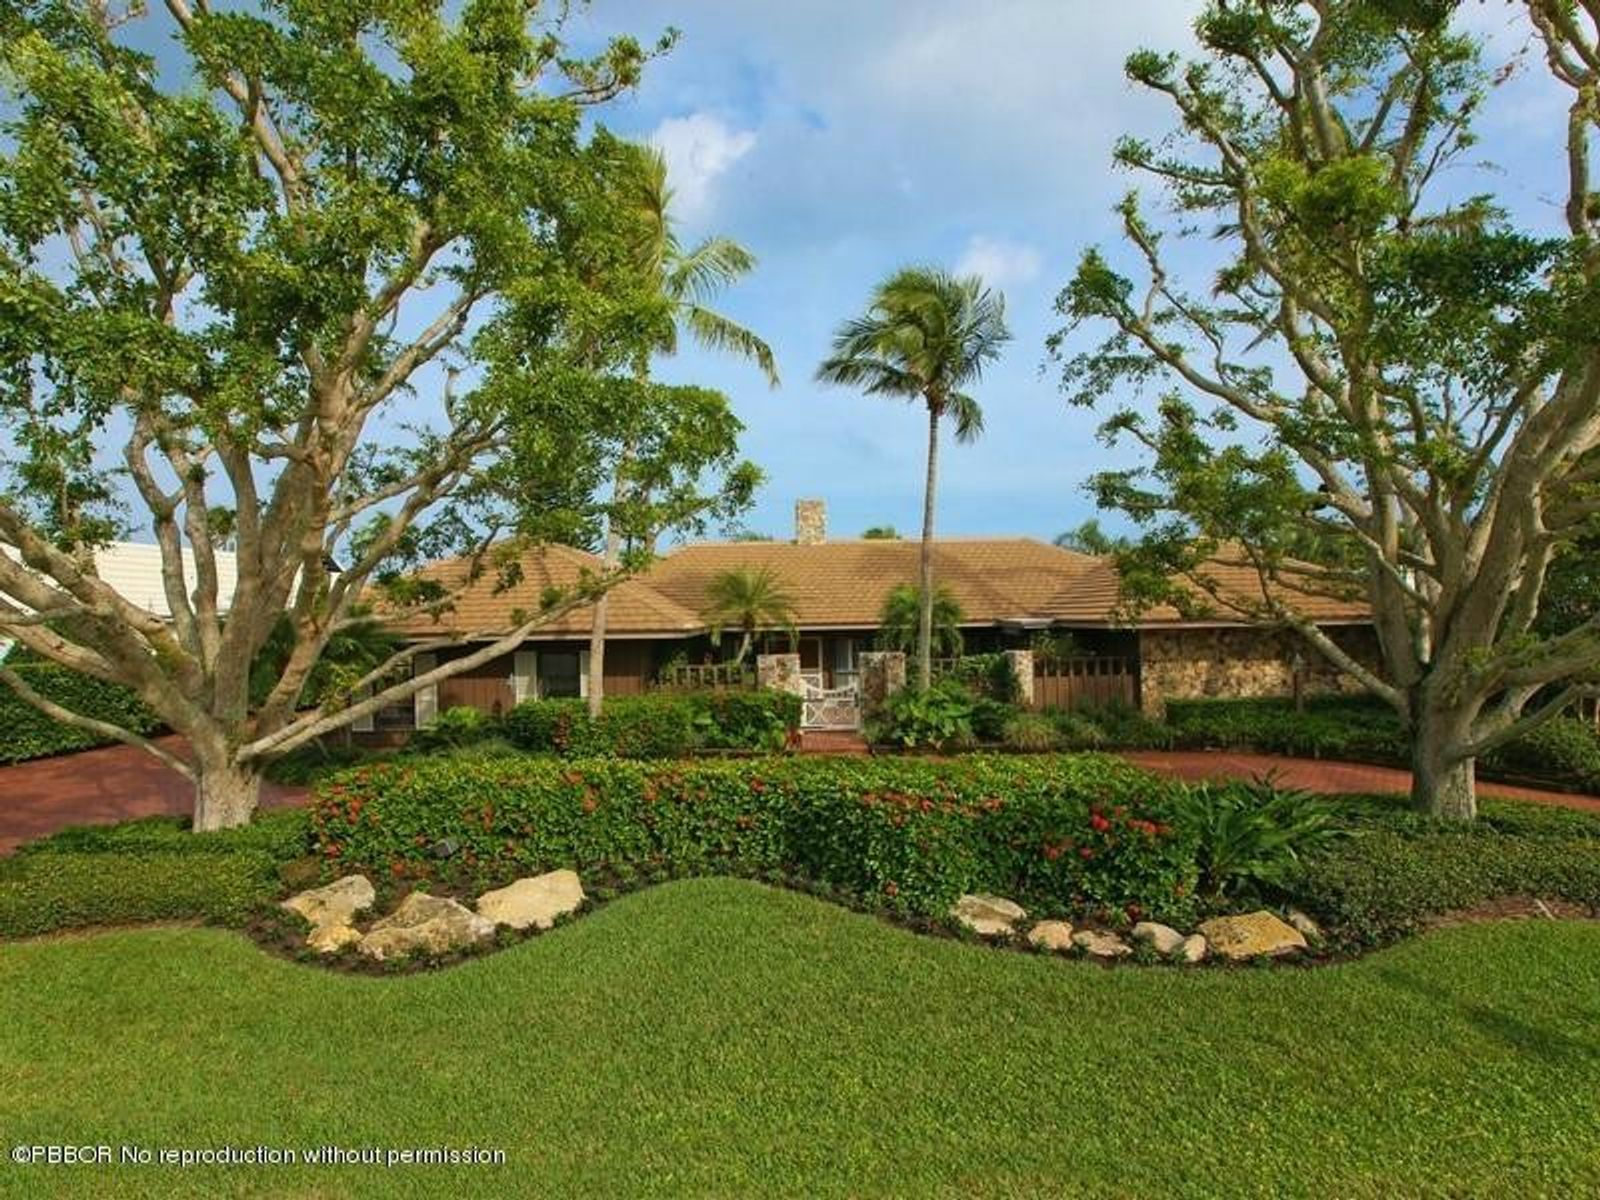 Lost Tree Village Golf Front, North Palm Beach FL Single Family Home - Palm Beach Real Estate